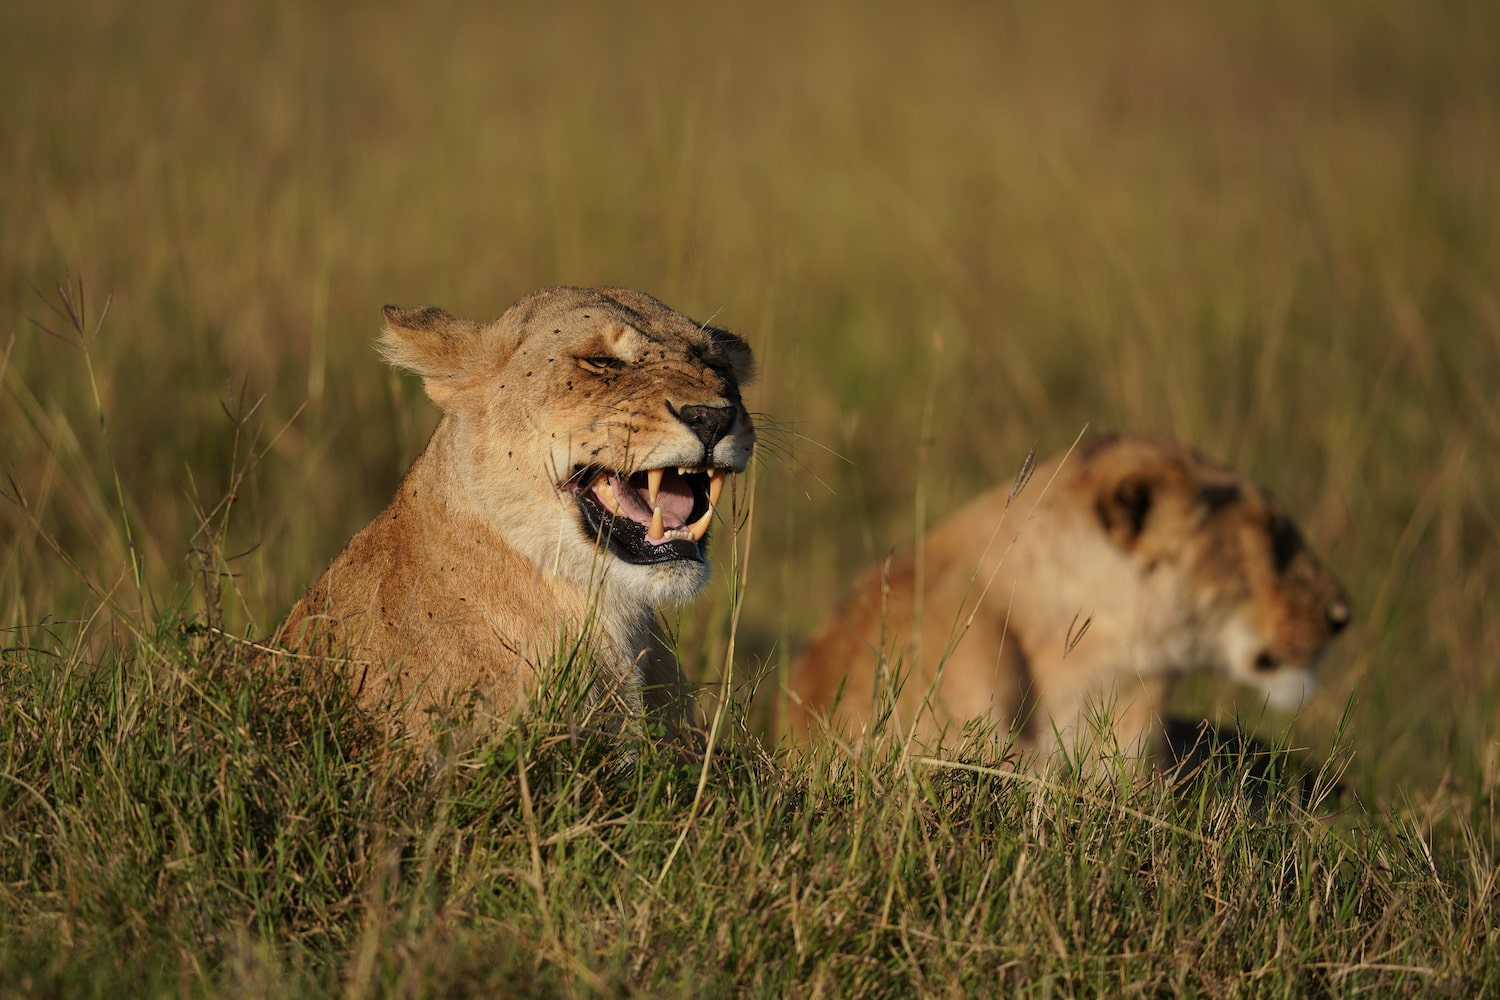 lions-lazing-in-the-grass-alpha-7III